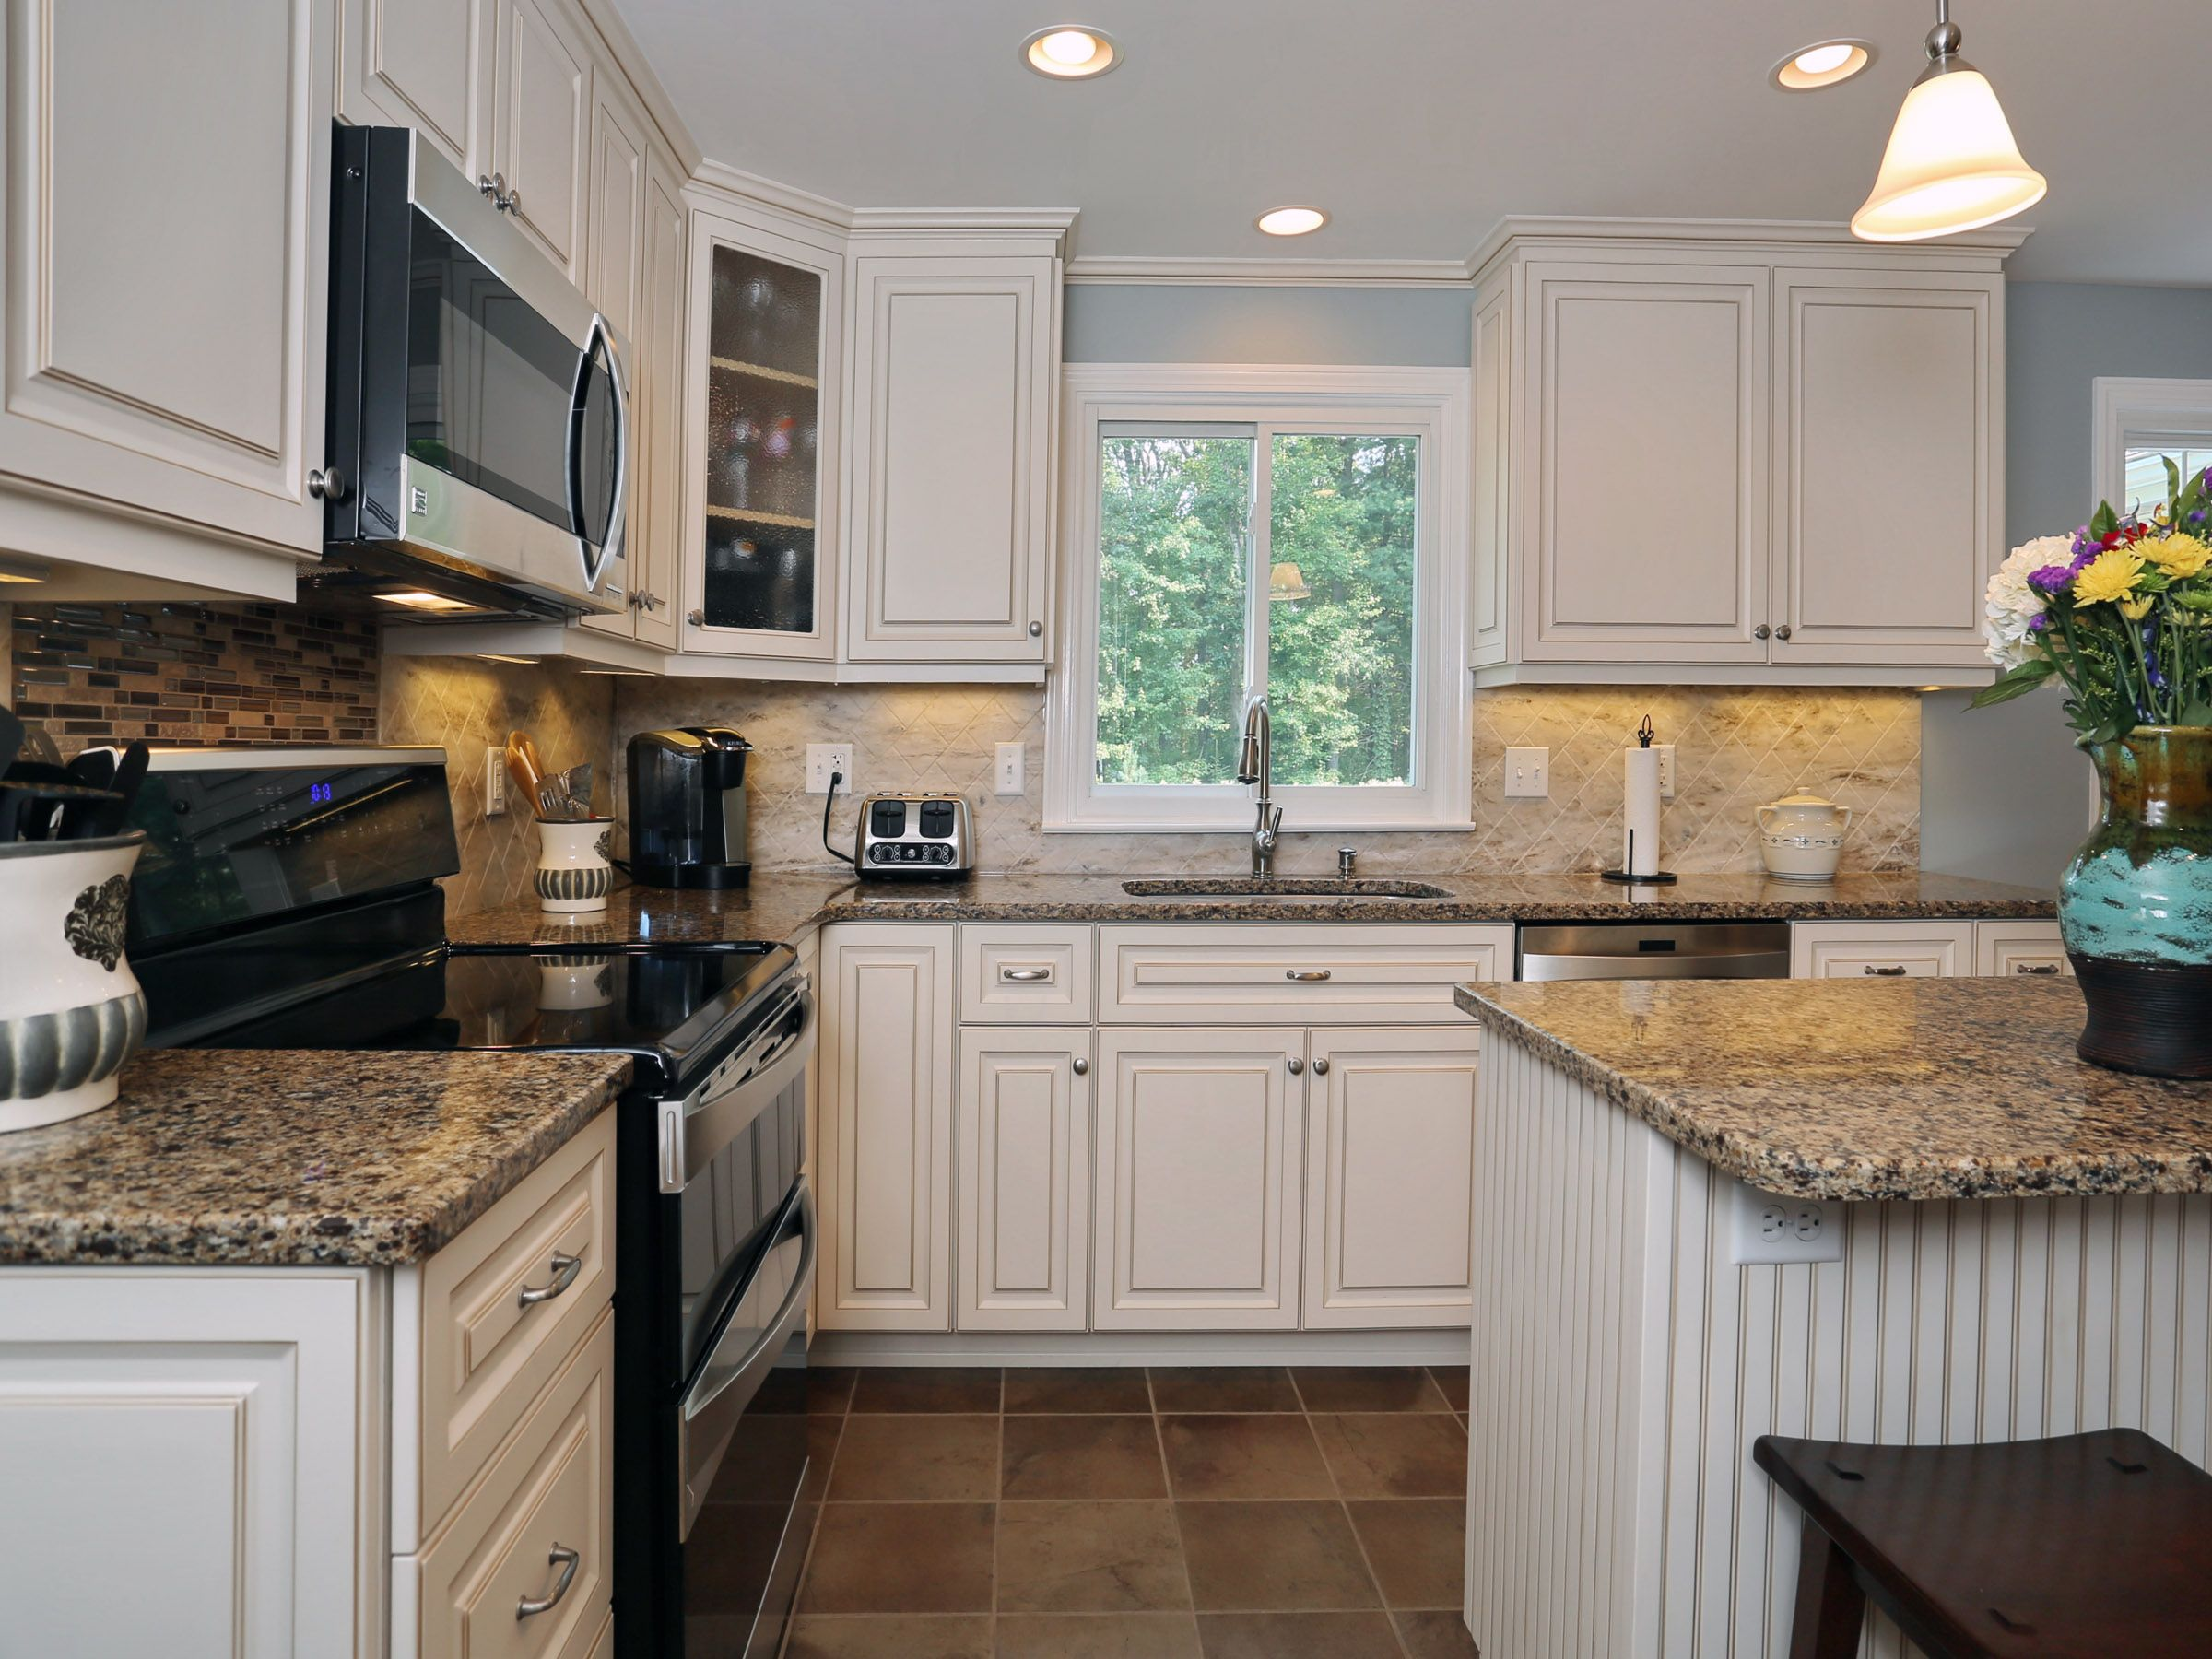 Have You Ever Seen A Canterbury Kitchen Kitchen Cabinets With Black Appliances Kitchen Design Black Appliances Kitchen